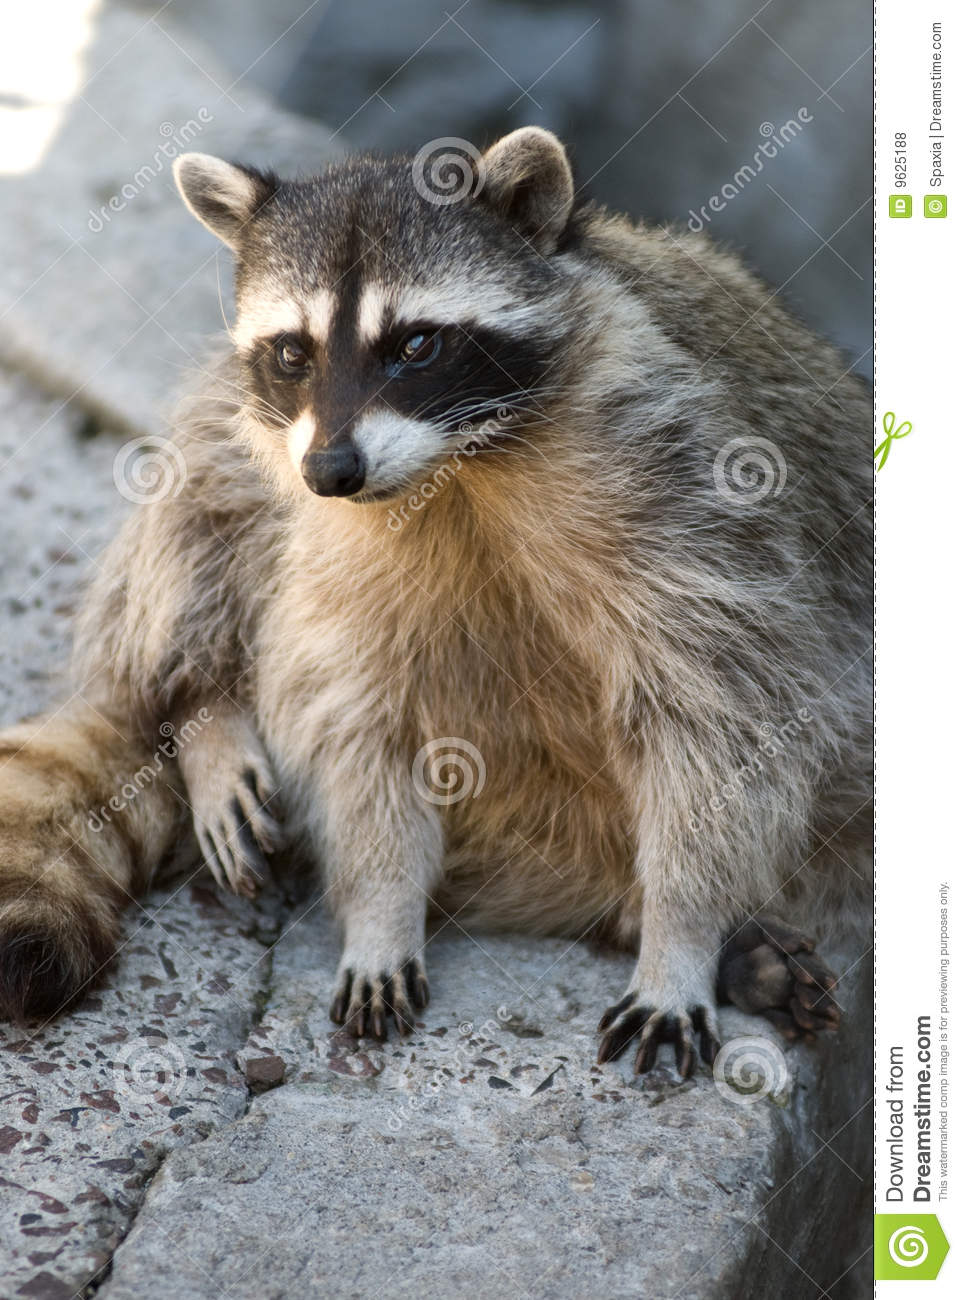 Cute Raccoon Royalty Free Stock Photos - Image: 9625188